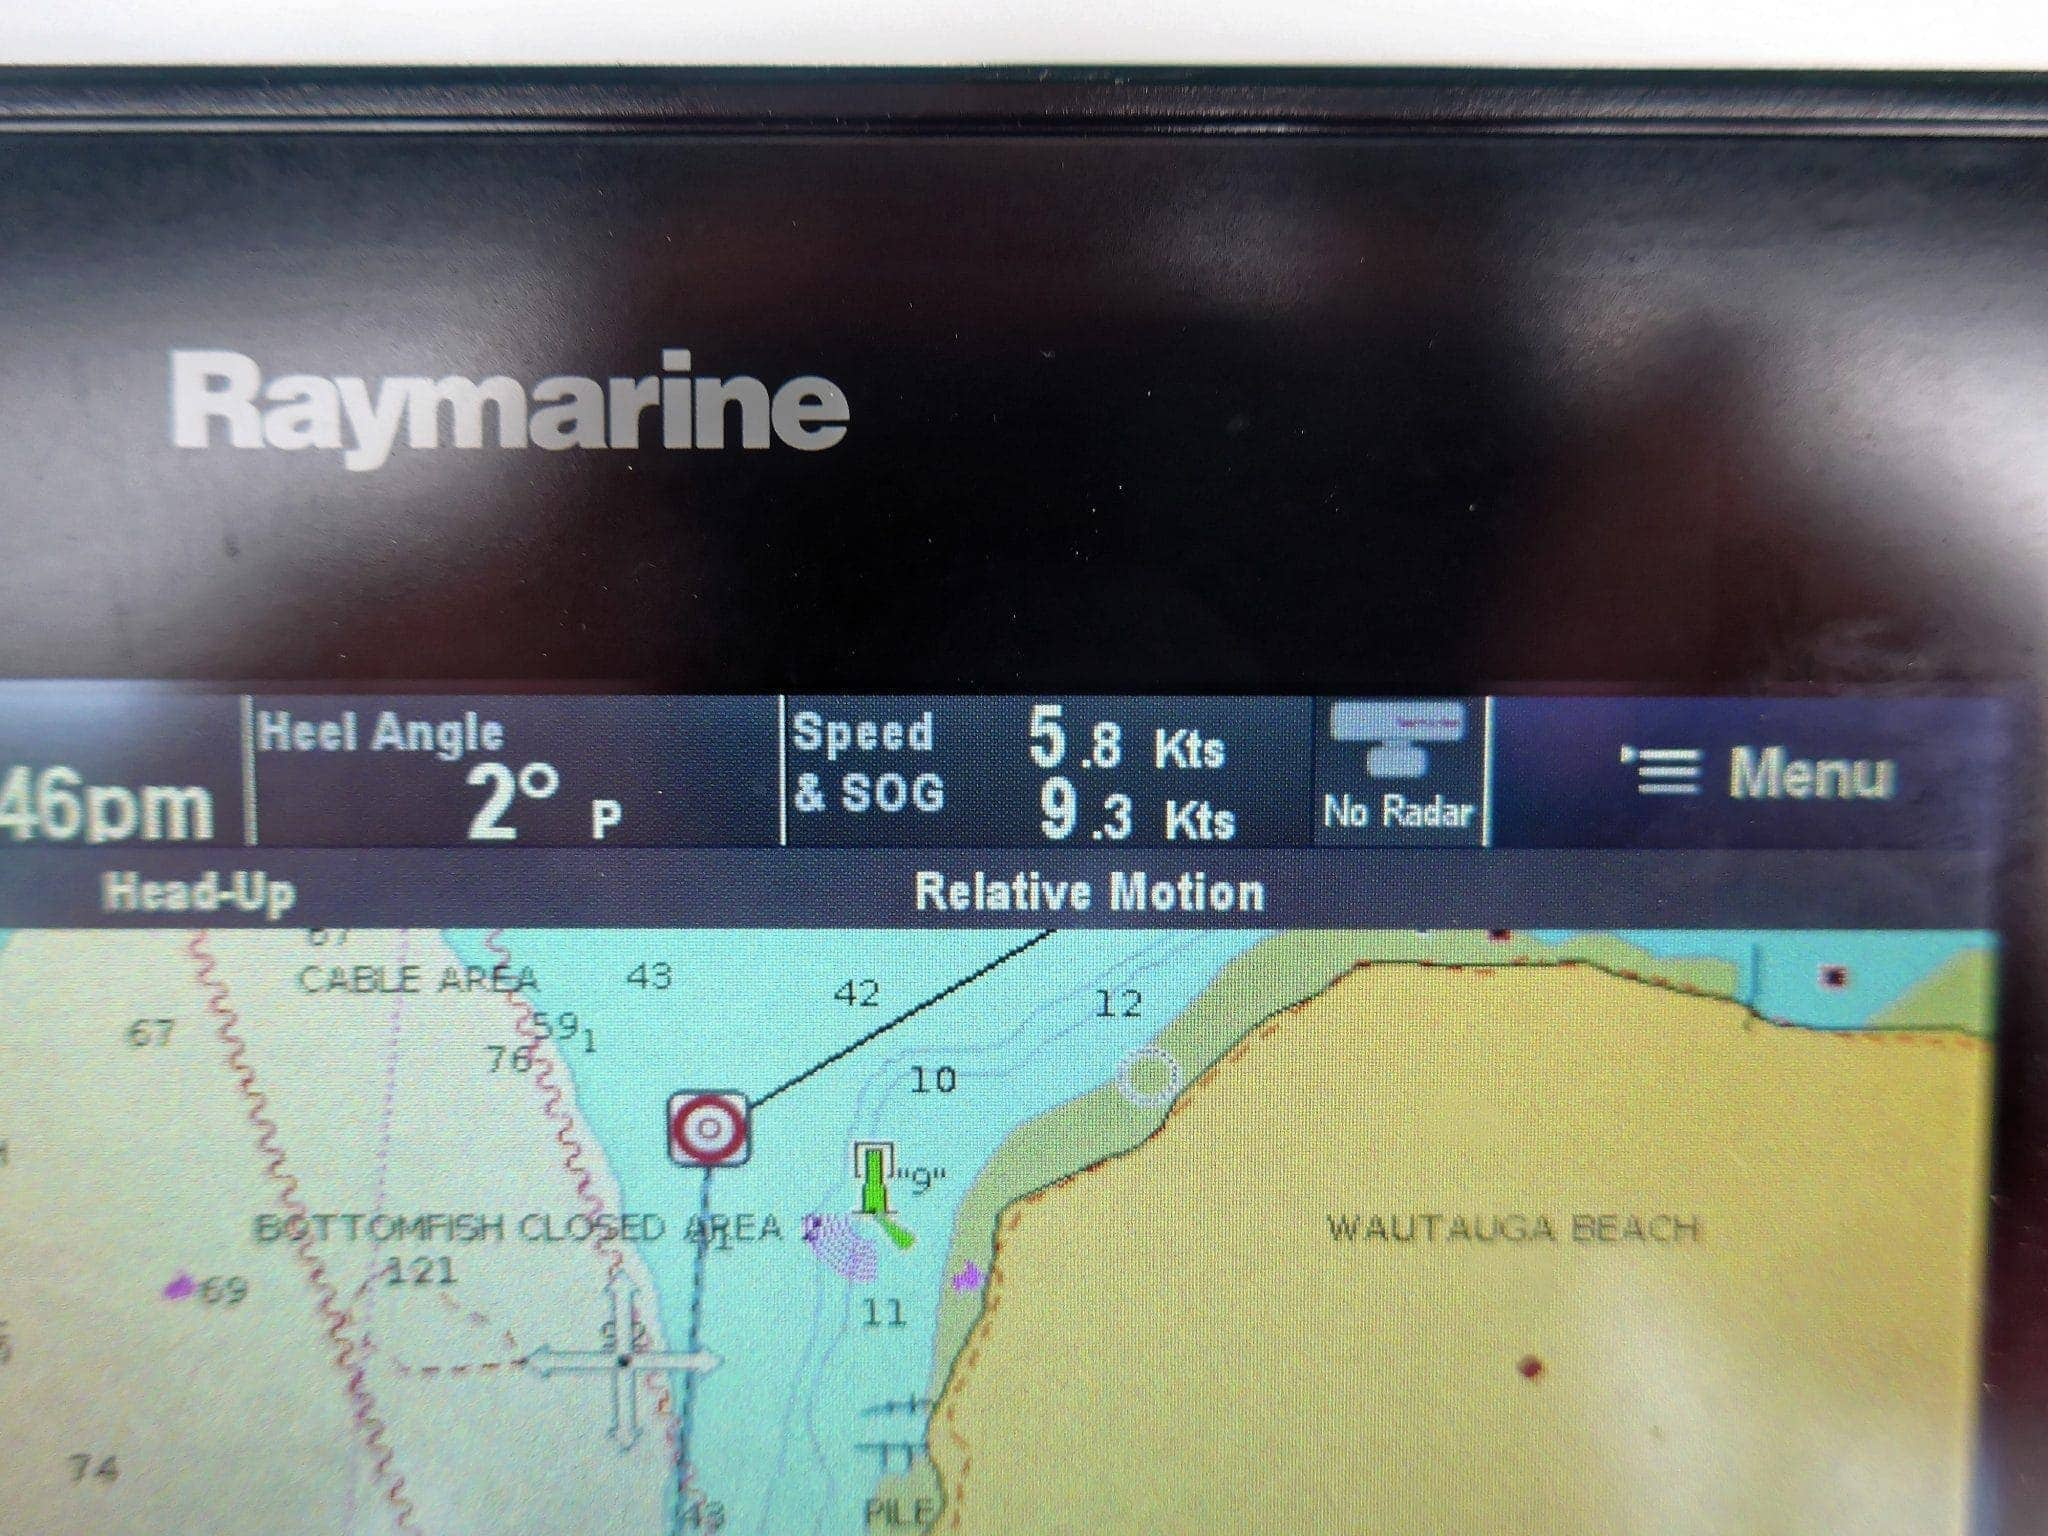 Raymarine MFD showing 3.5 knot advantage through the passage